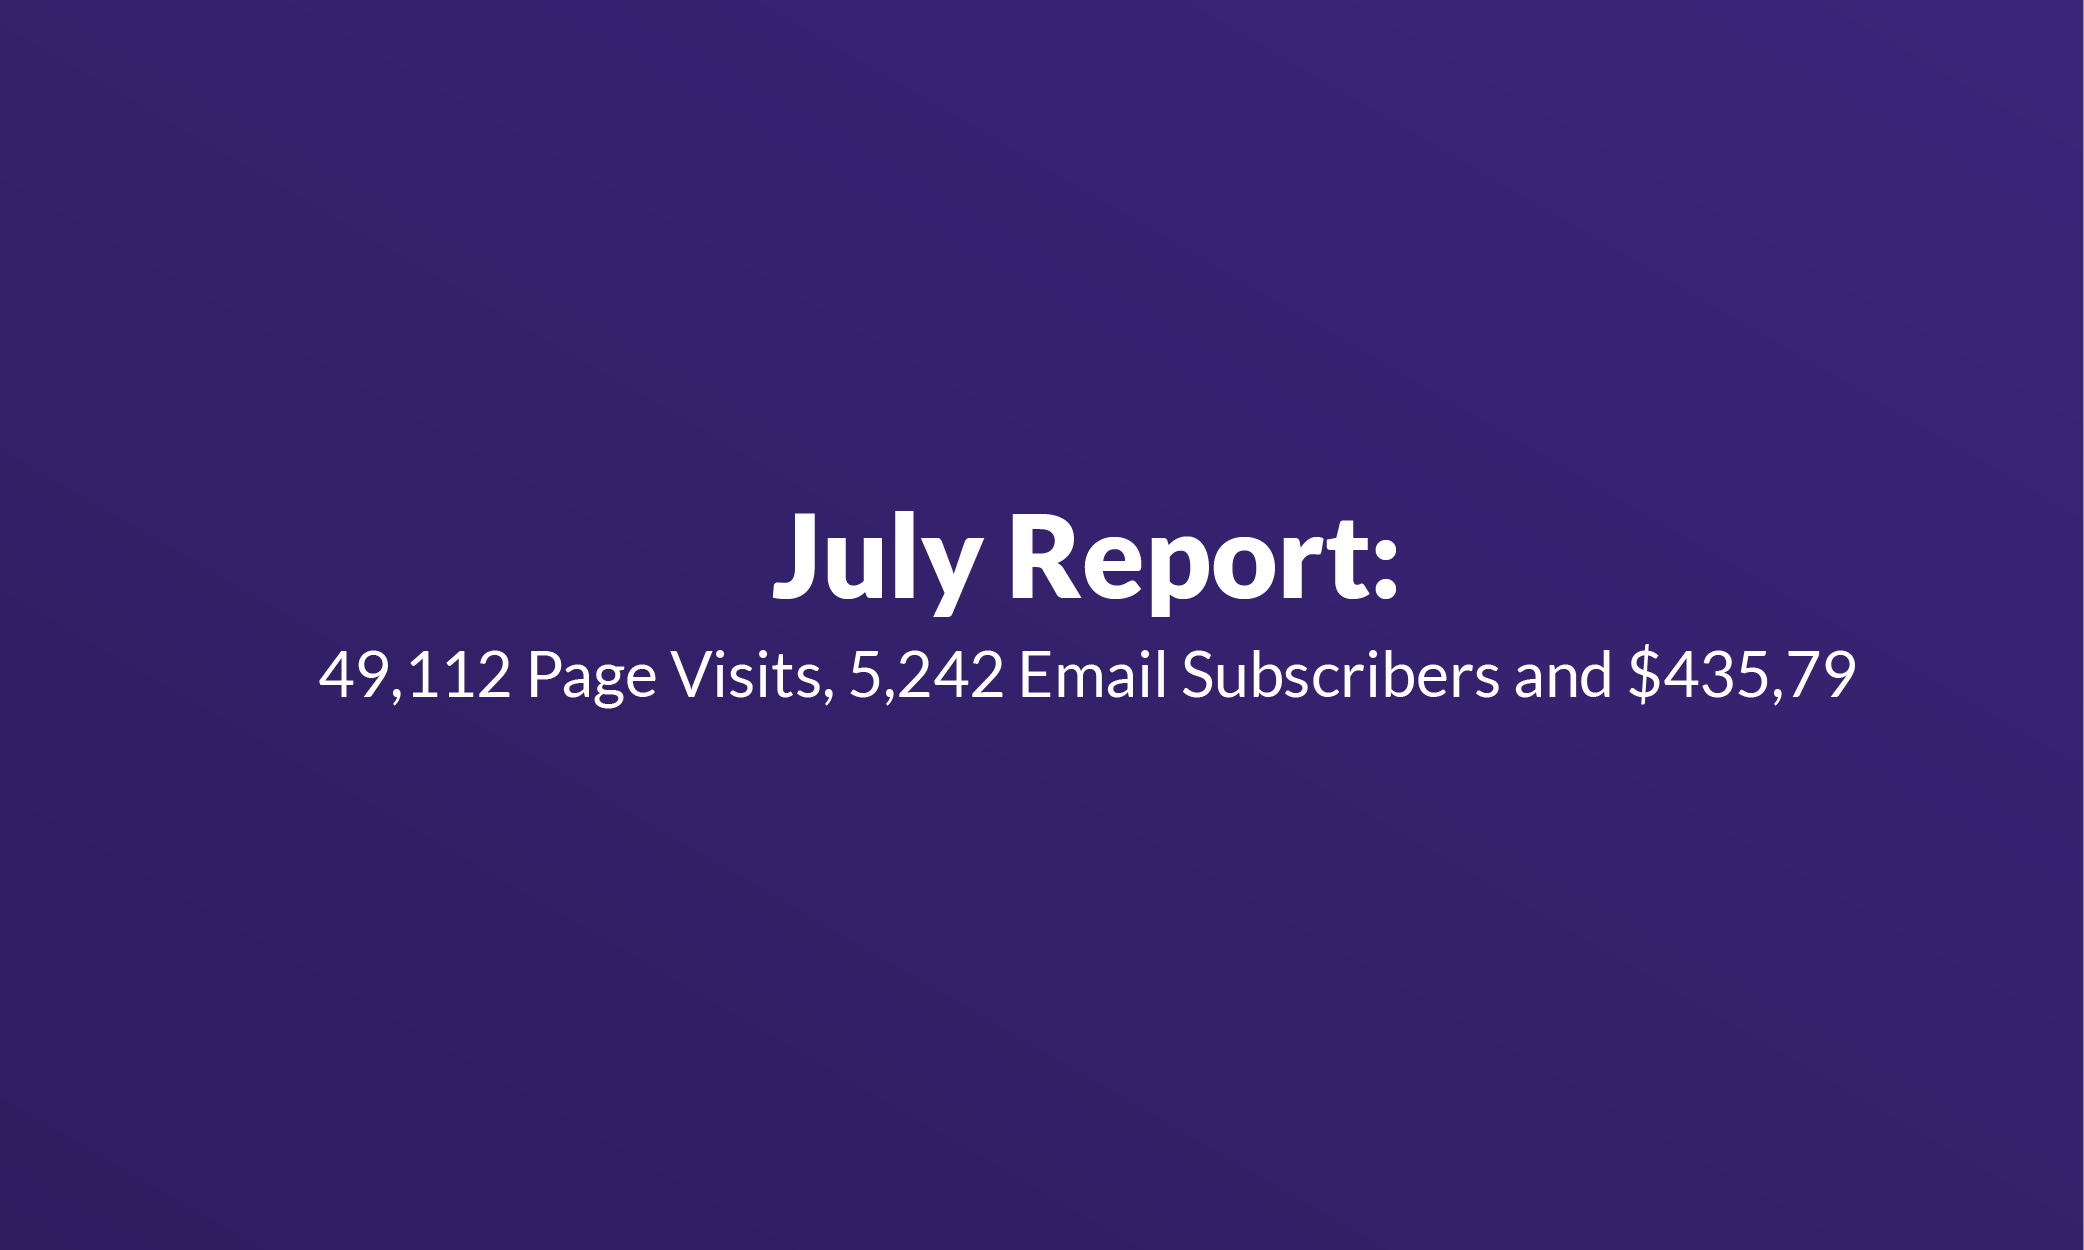 Failory July Report